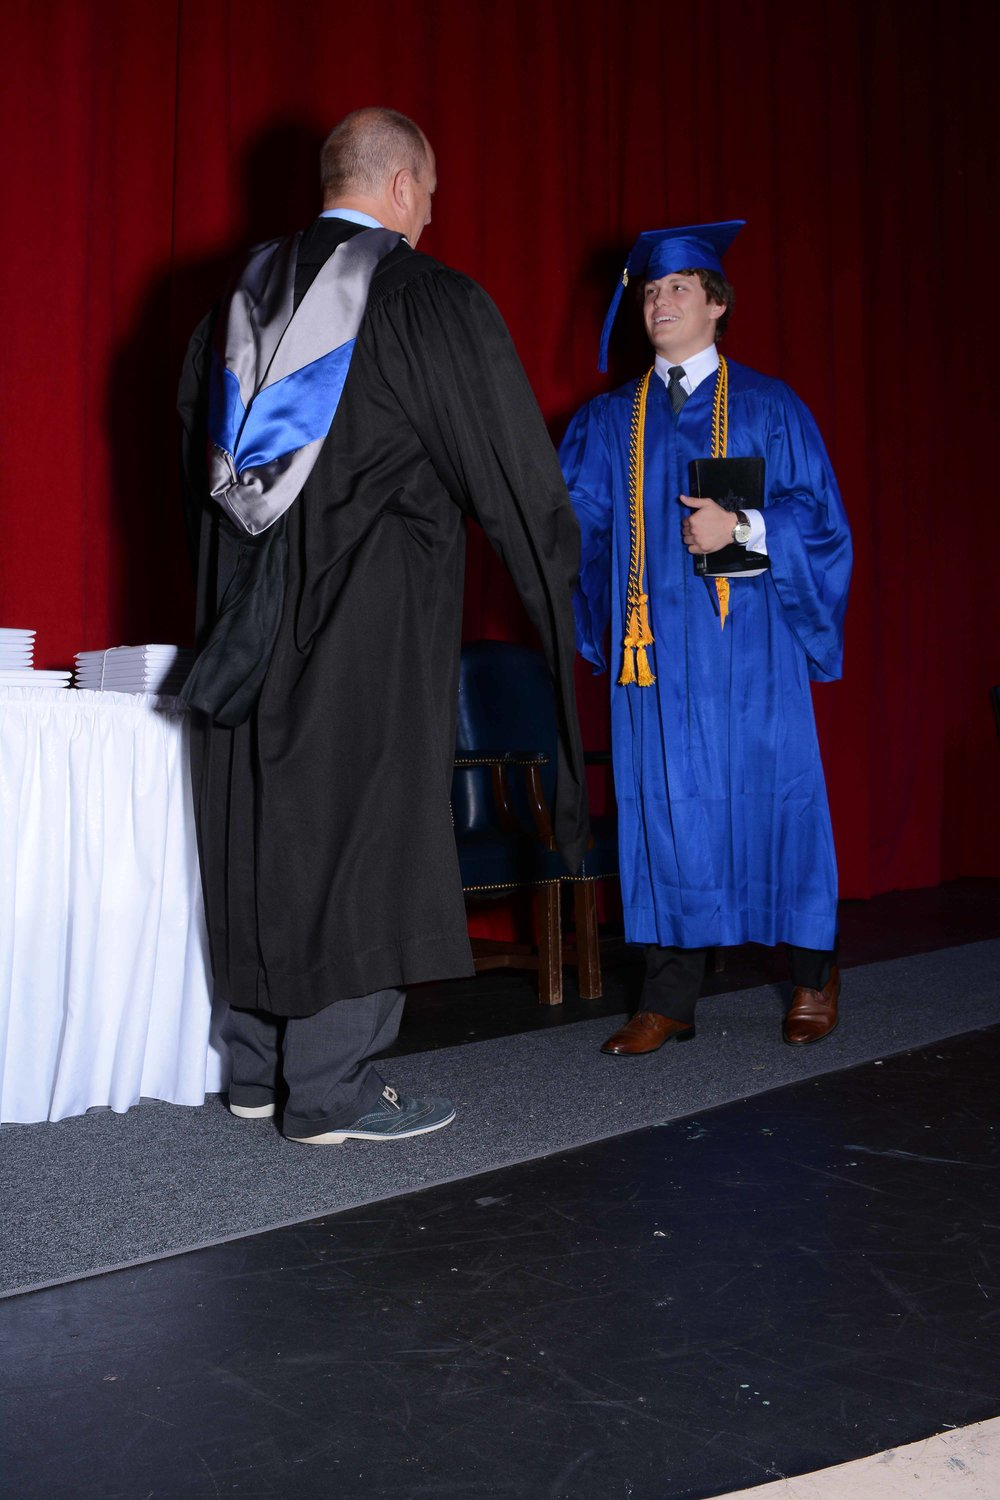 May14 Commencement138.jpg